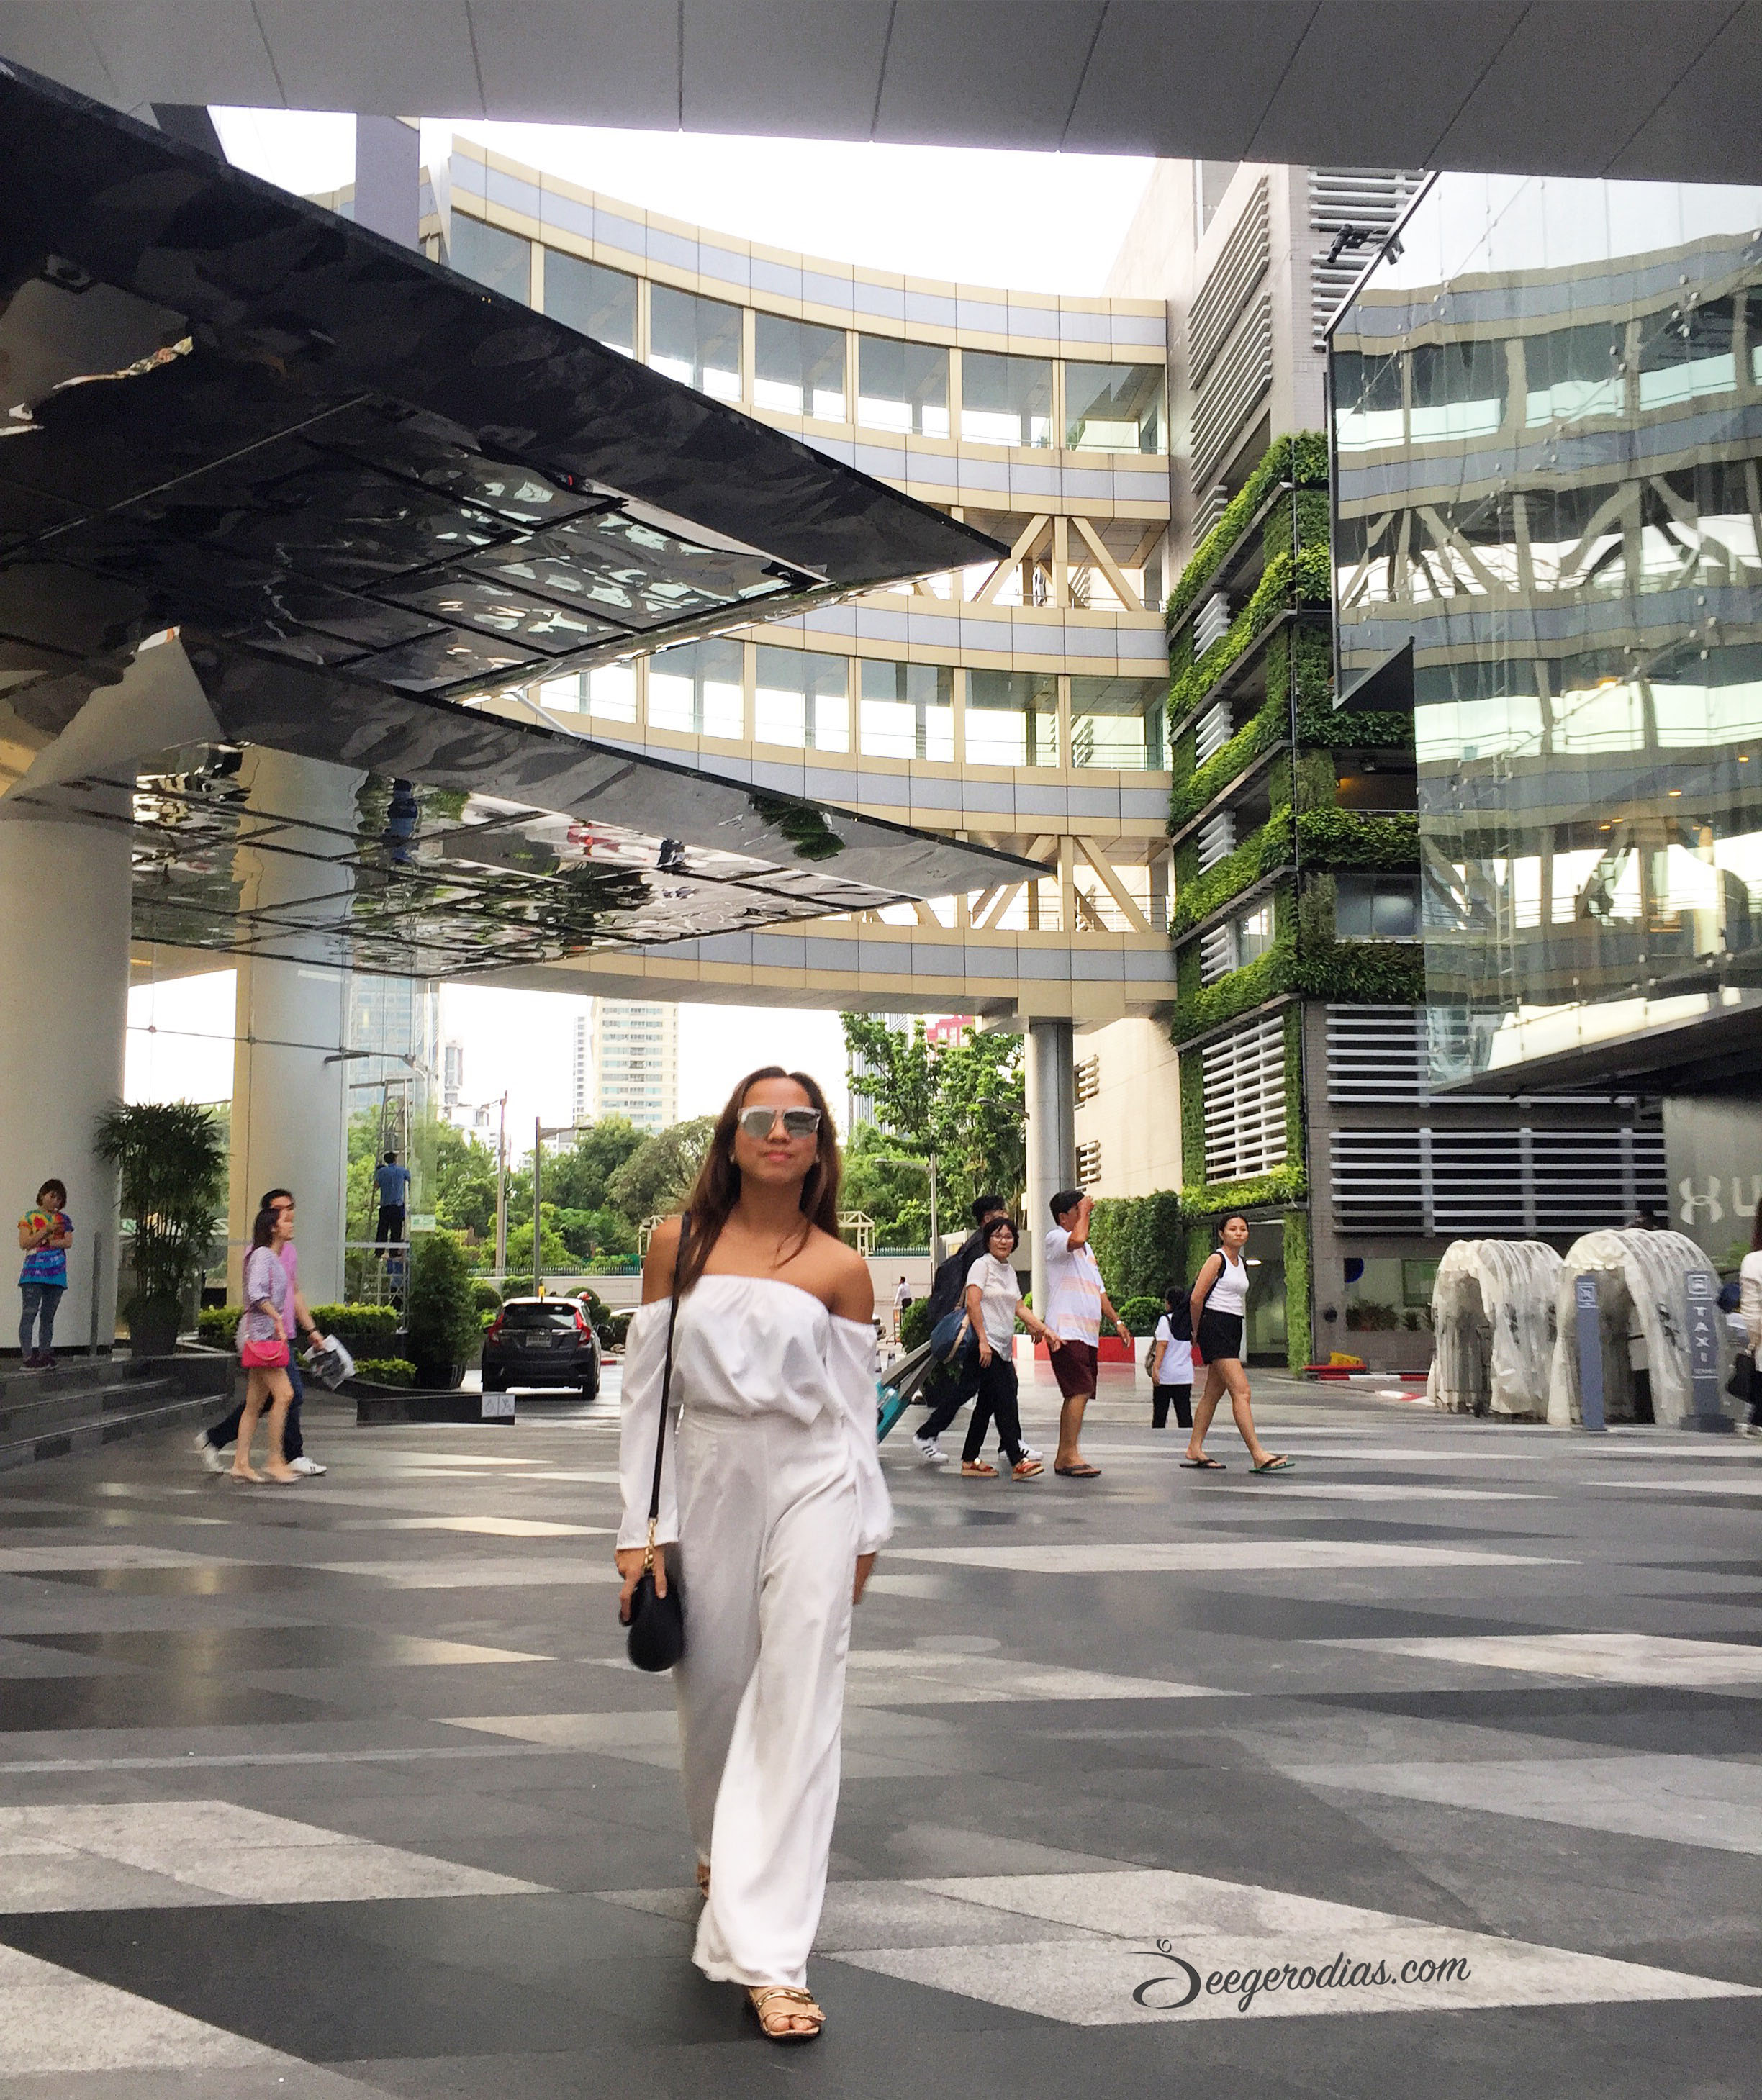 At  Siam Paragon :  And my favorite part about Bangkok? SHOPPING! There's something for everyone. From high-end brands to trendy fashion items at wholesale prices (I love   Platinum Fashion Mall   for this).